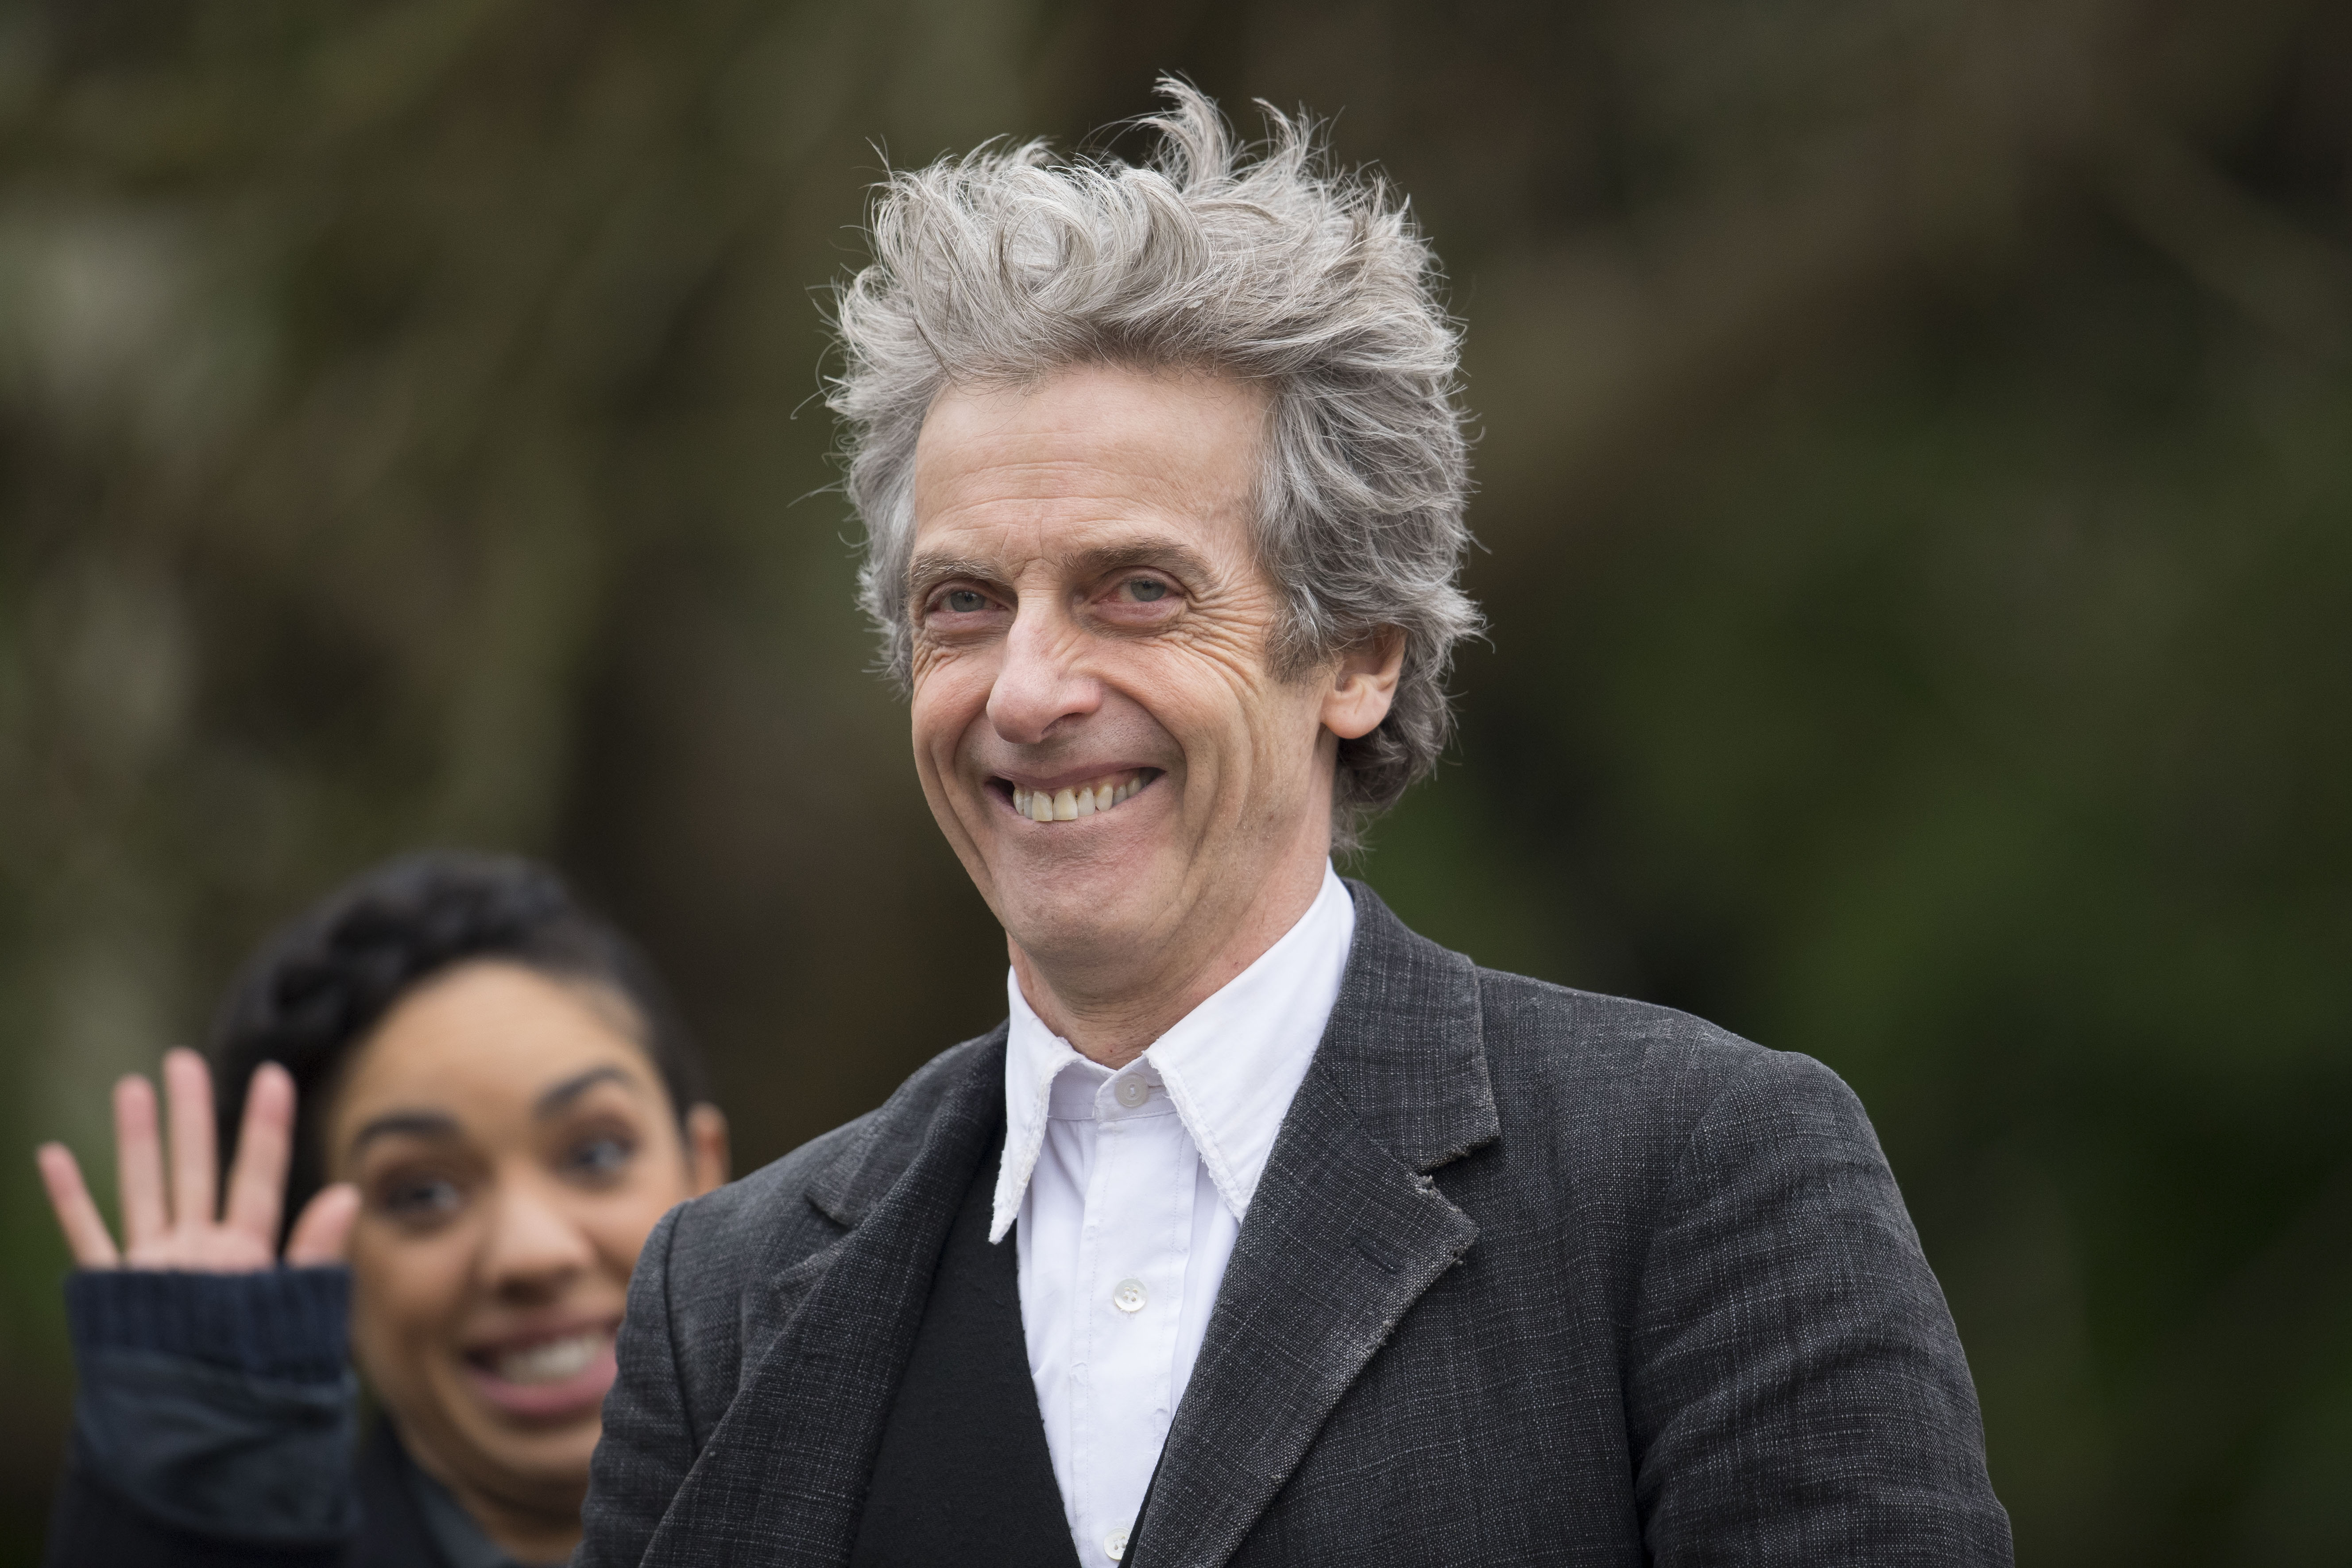 CARDIFF, WALES - JANUARY 26: Peter Capaldi, who plays the Doctor, smiles to the camera while the Doctor's companion Pearl Mackie waves during filming for series 10 of BBC show Doctor Who at Cardiff University's Main building on January 26, 2017  in Cardiff, Wales.